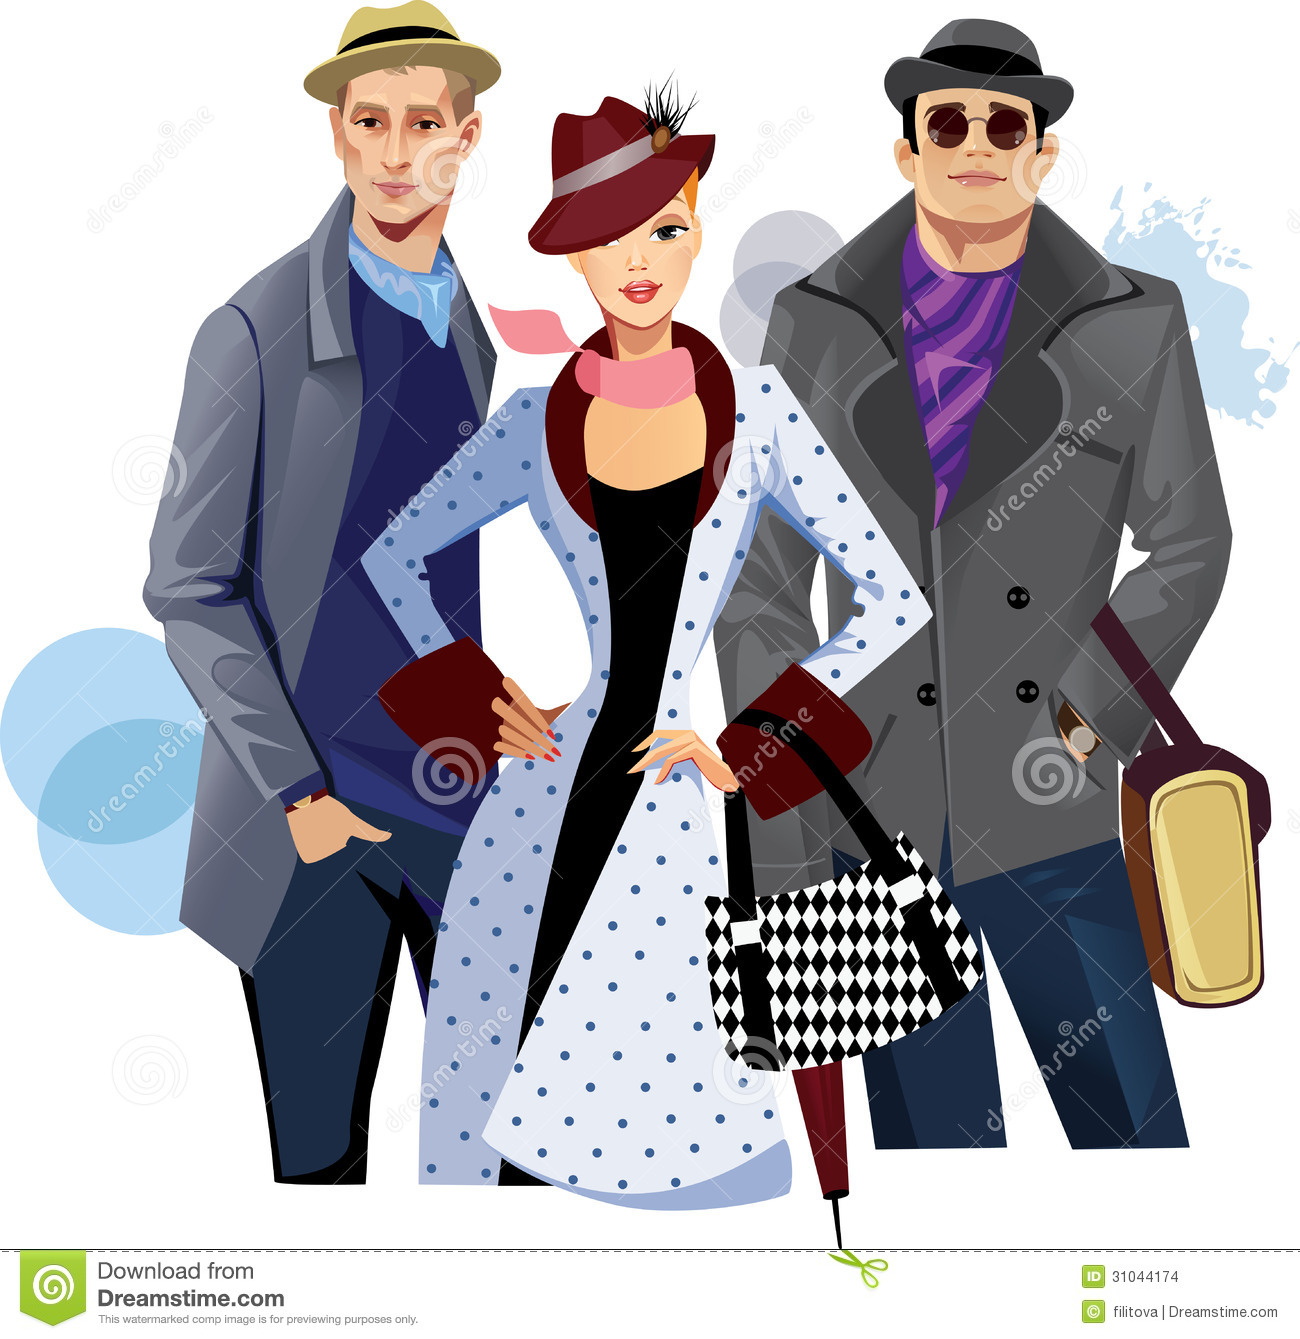 Fashionable Men And Woman In Coat Stock Images - Image: 31044174